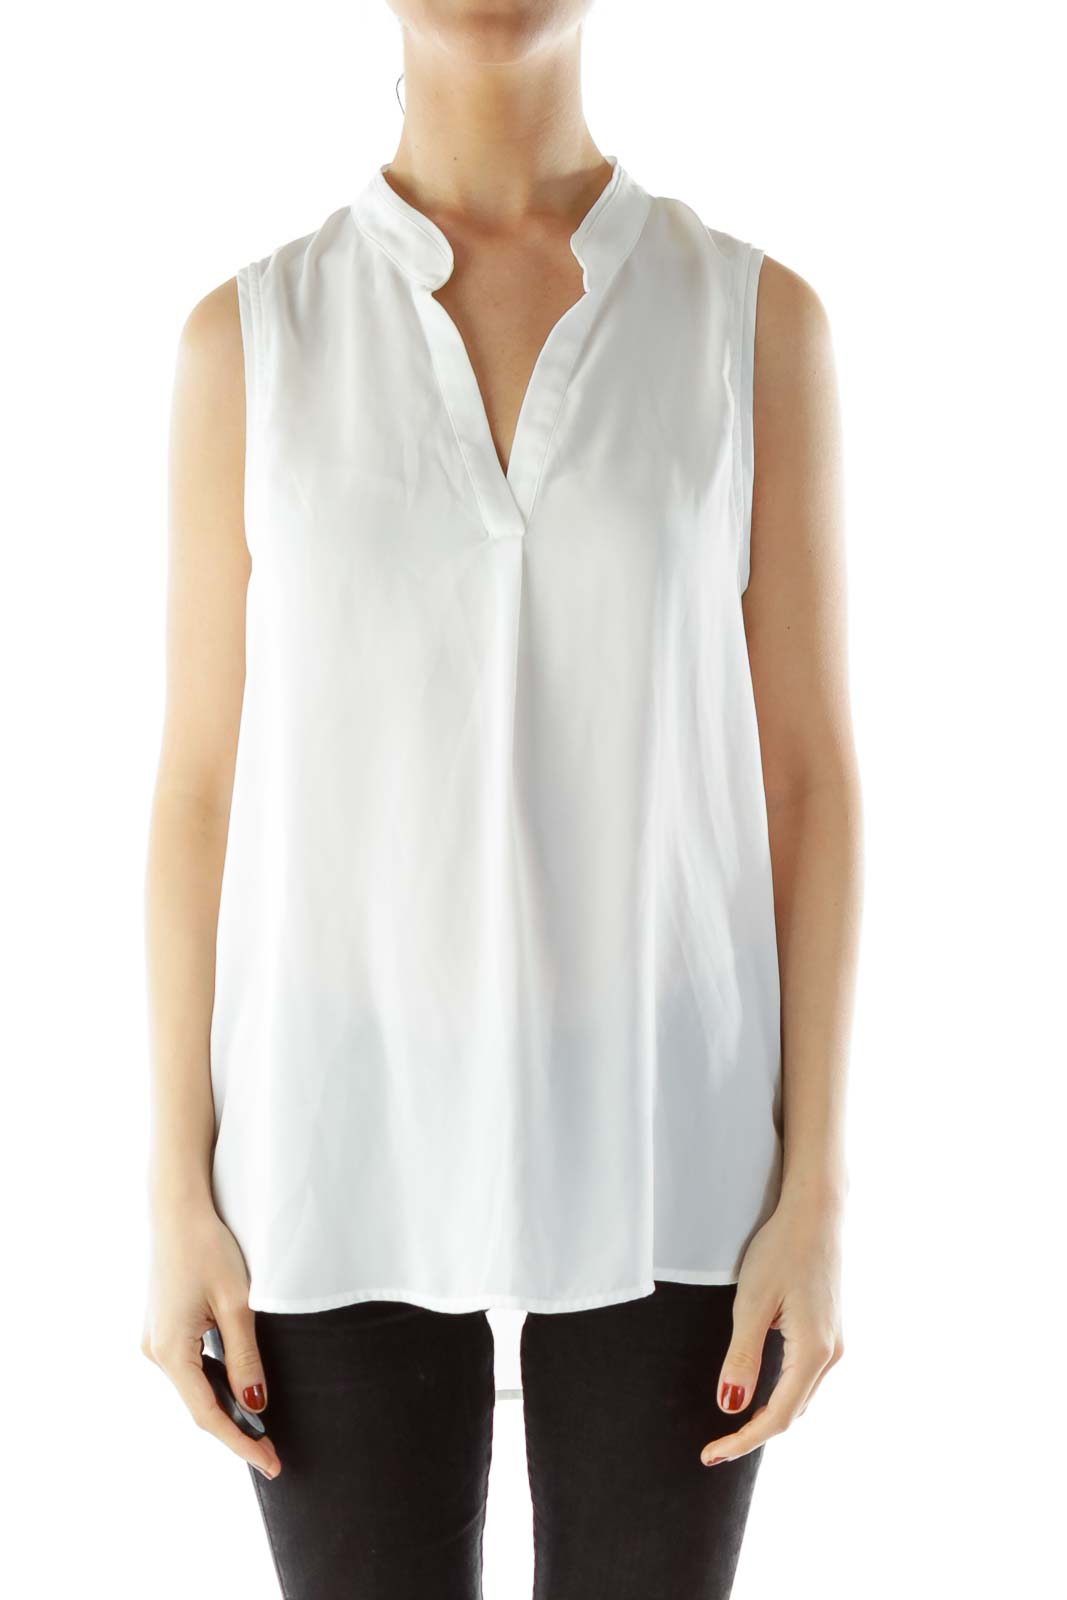 a2bef7d9ef048 Shop White Collared Sleeveless V-neck Blouse clothing and handbags ...